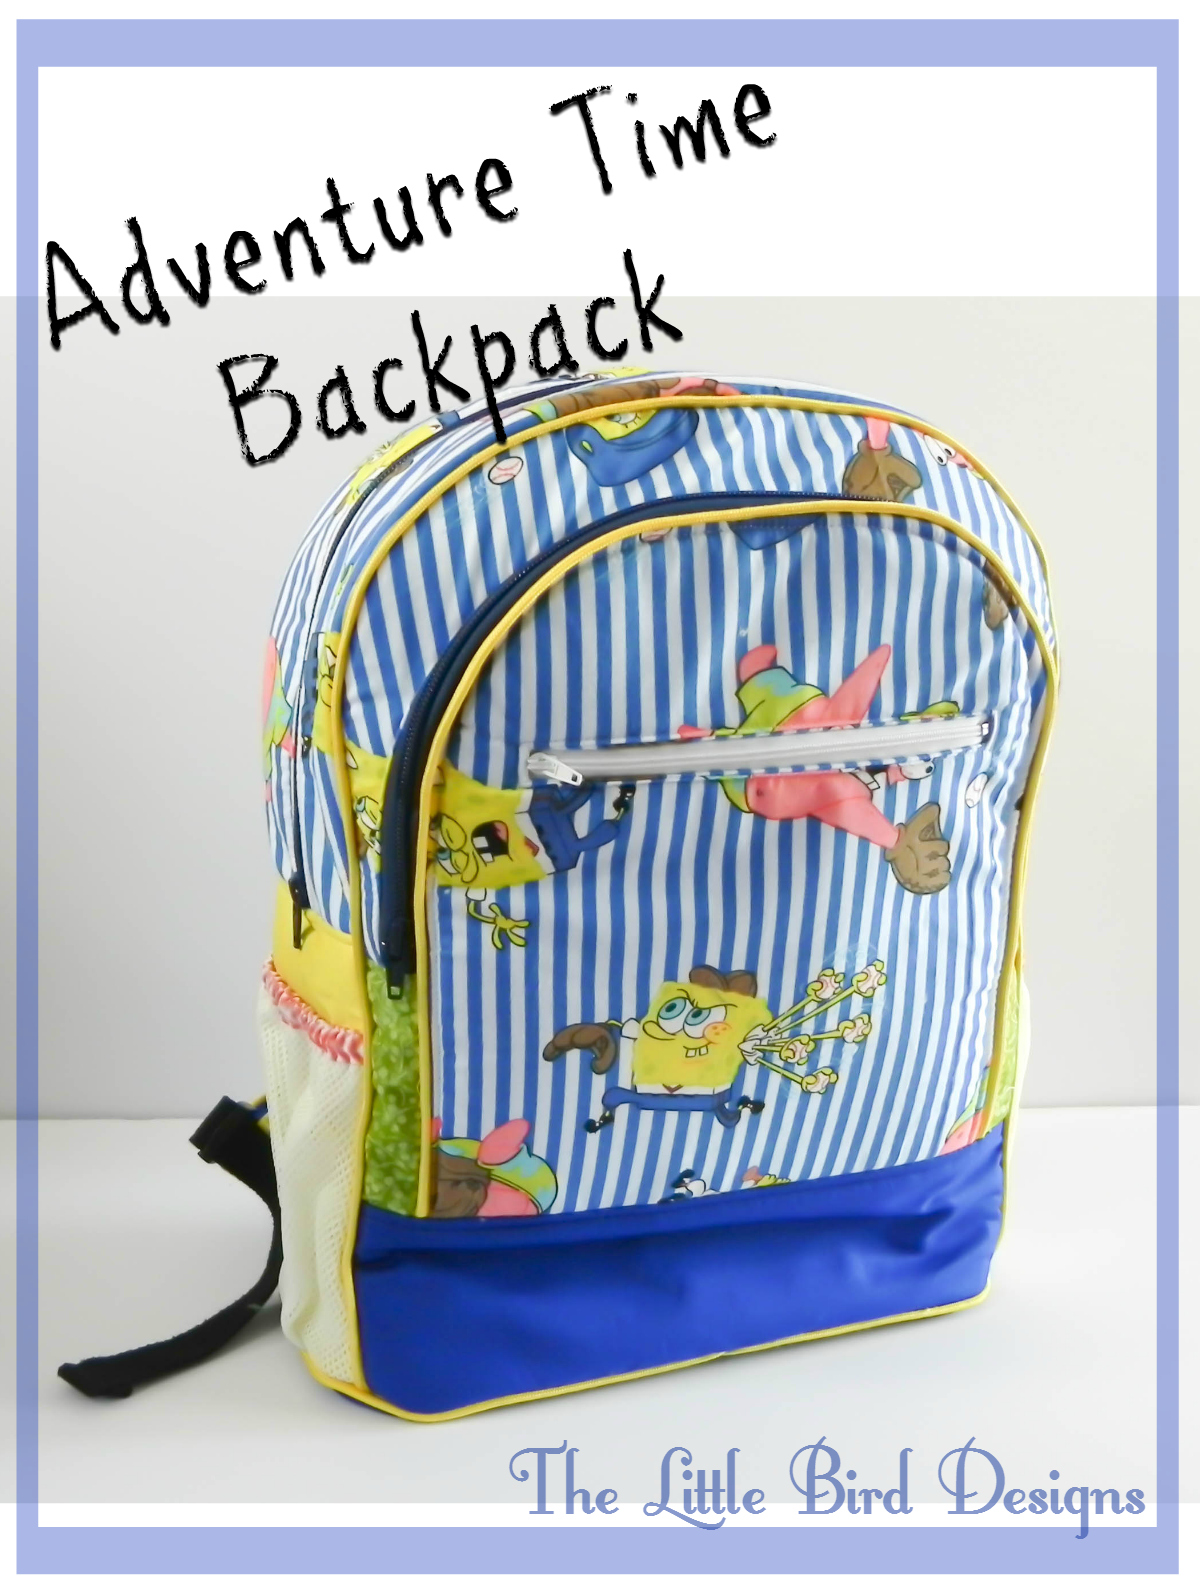 Adventure Time Backpack by The Little Bird Designs